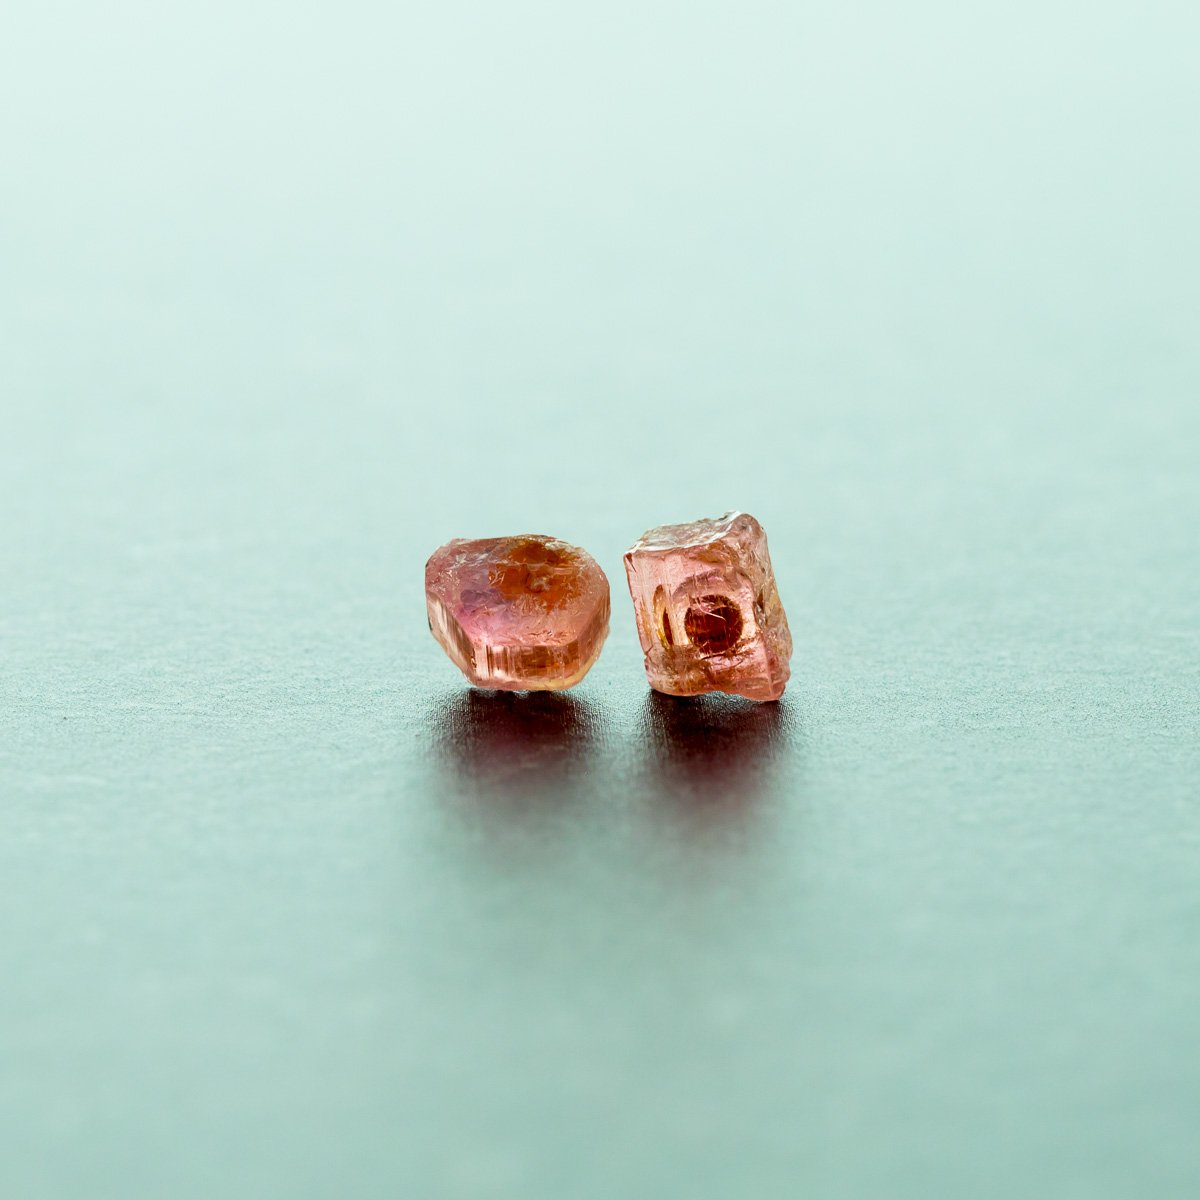 Raw Pink Tourmaline Earrings | Liz.Beth Jewelry Co.